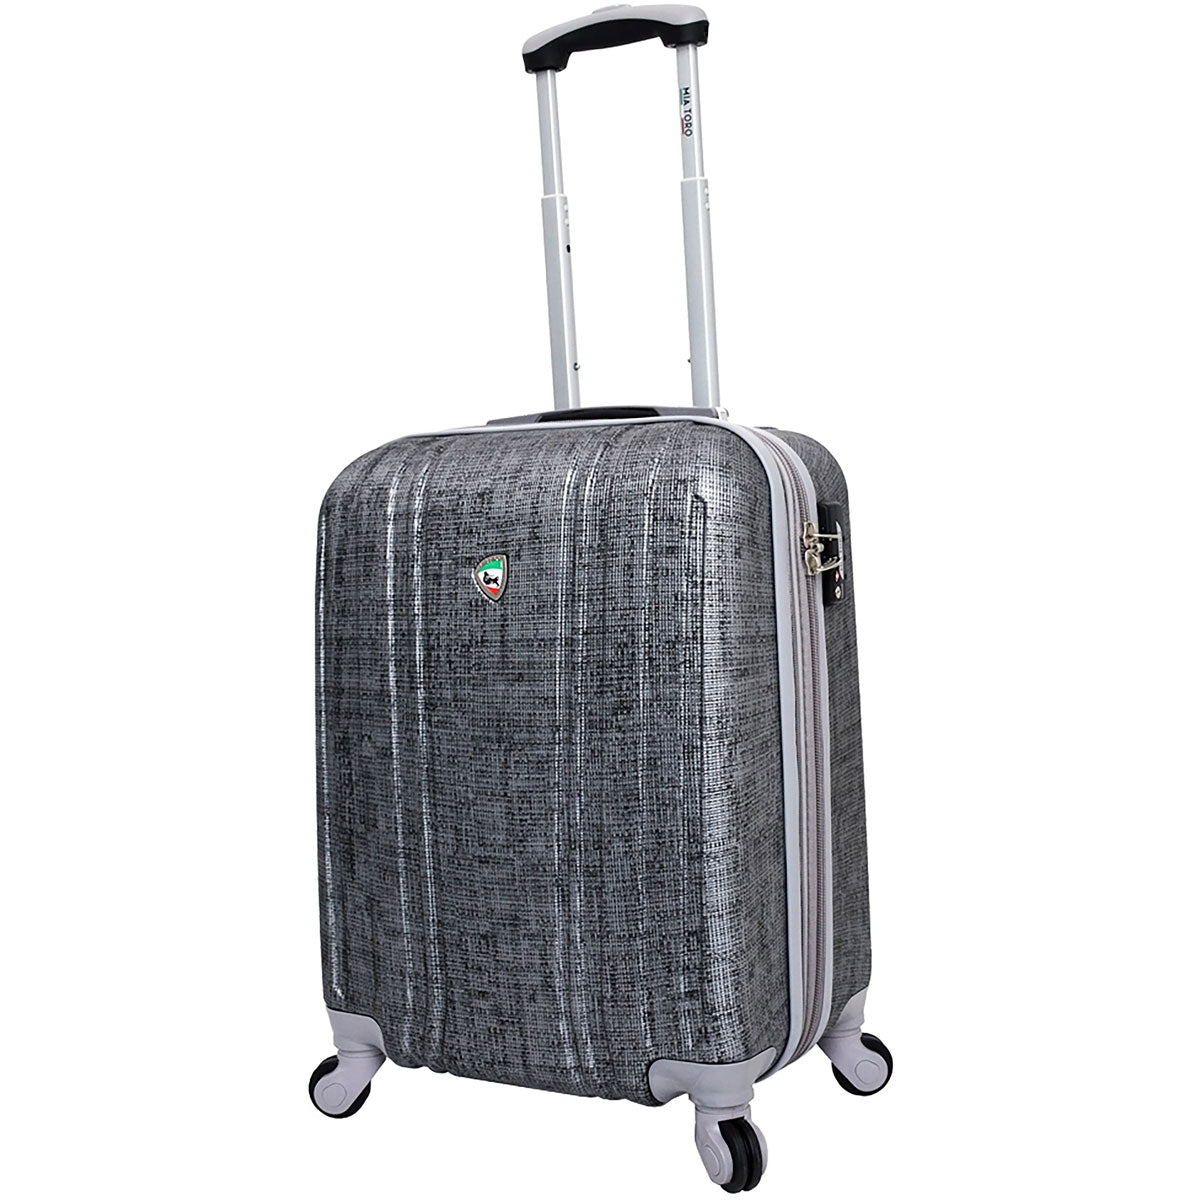 Mia Toro Macchiolina Abrasa Hardside 24in Spinner - Luggage Factory